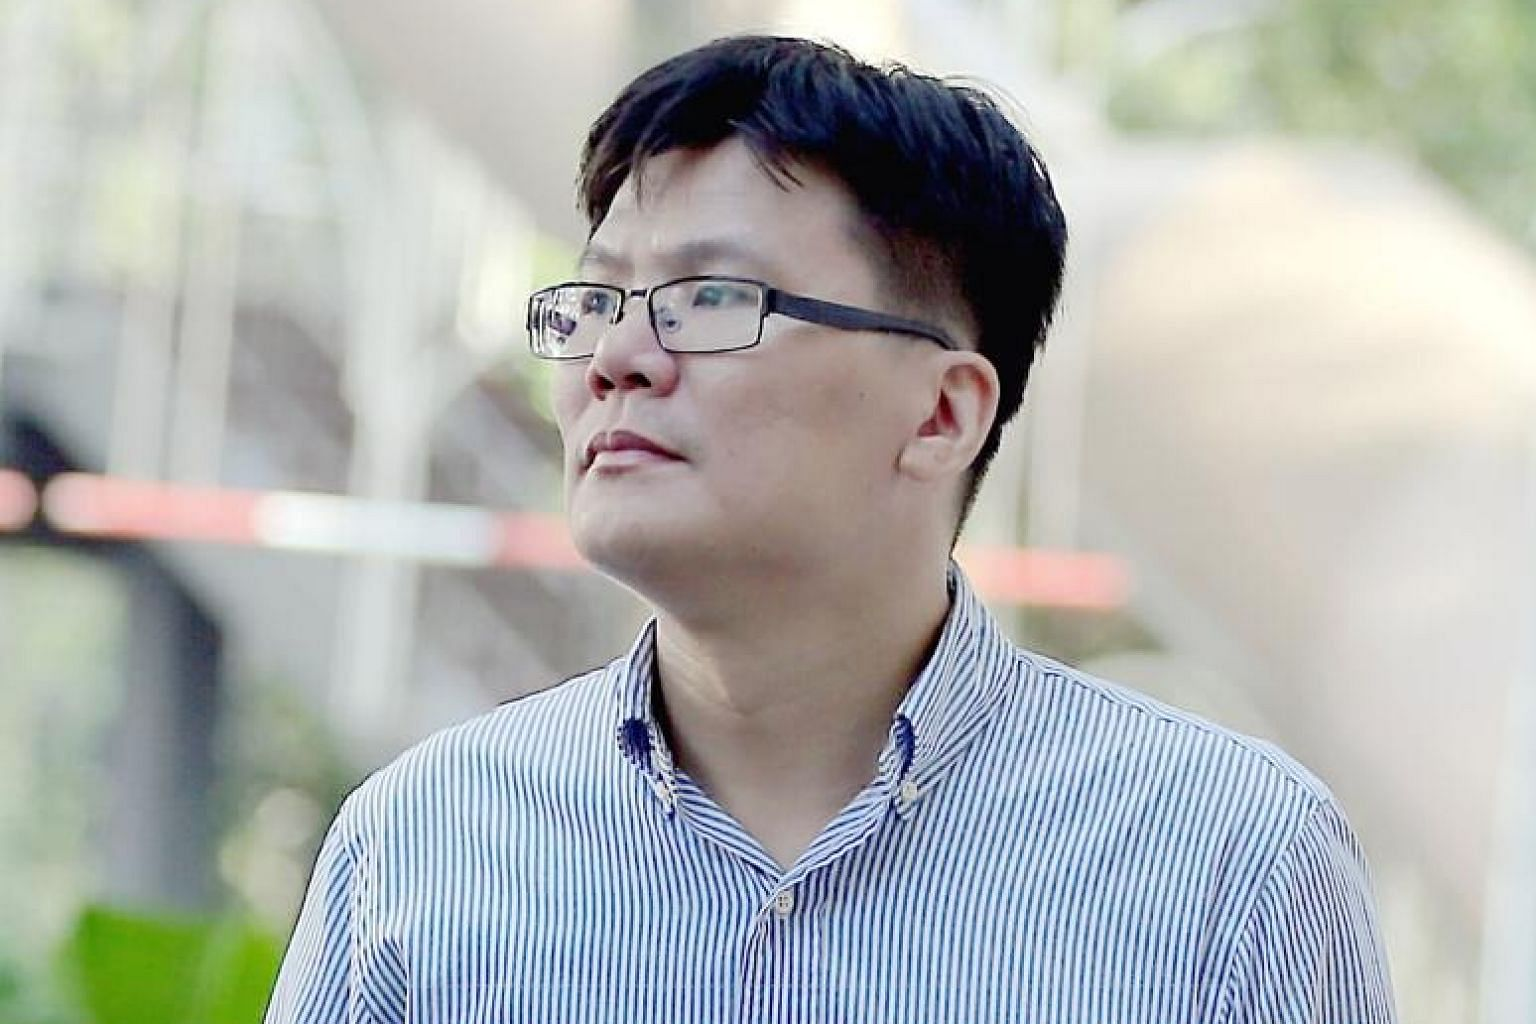 """The prosecution said Lu Chor Sheng had """"grossly abused his position of trust"""" to benefit himself."""